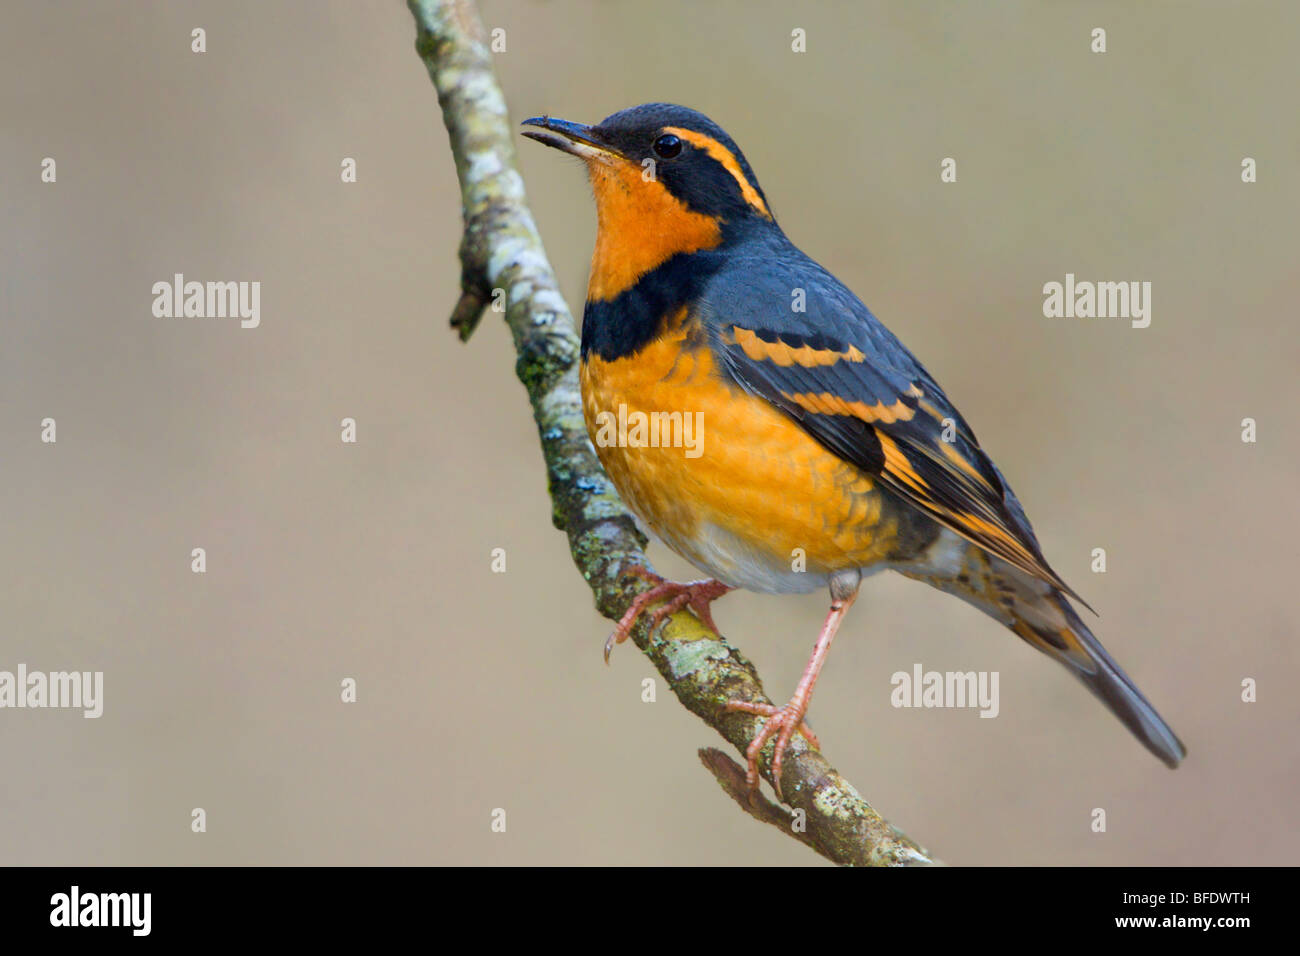 Varied Thrush (Ixoreus naevius) perched on a branch in Victoria, Vancouver Island, British Columbia, Canada - Stock Image